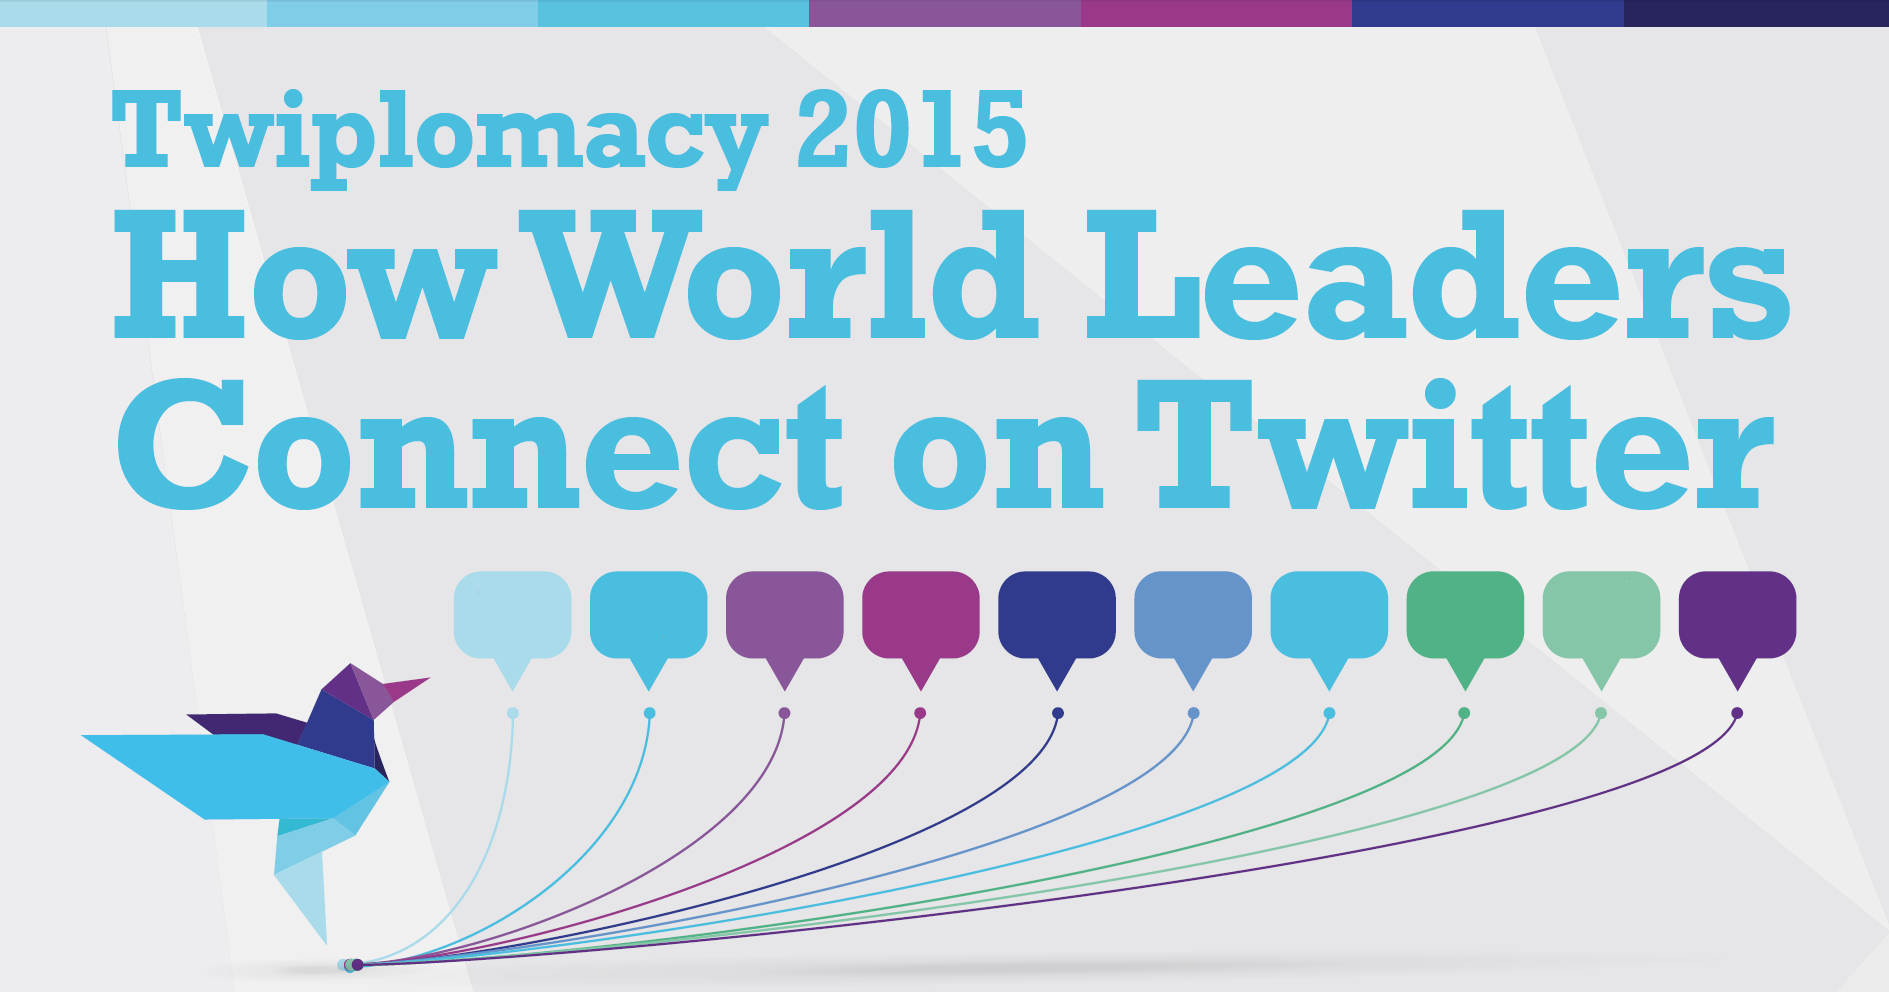 Twiplomacy 2015 report: Twitter is the channel of choice for digital diplomacy